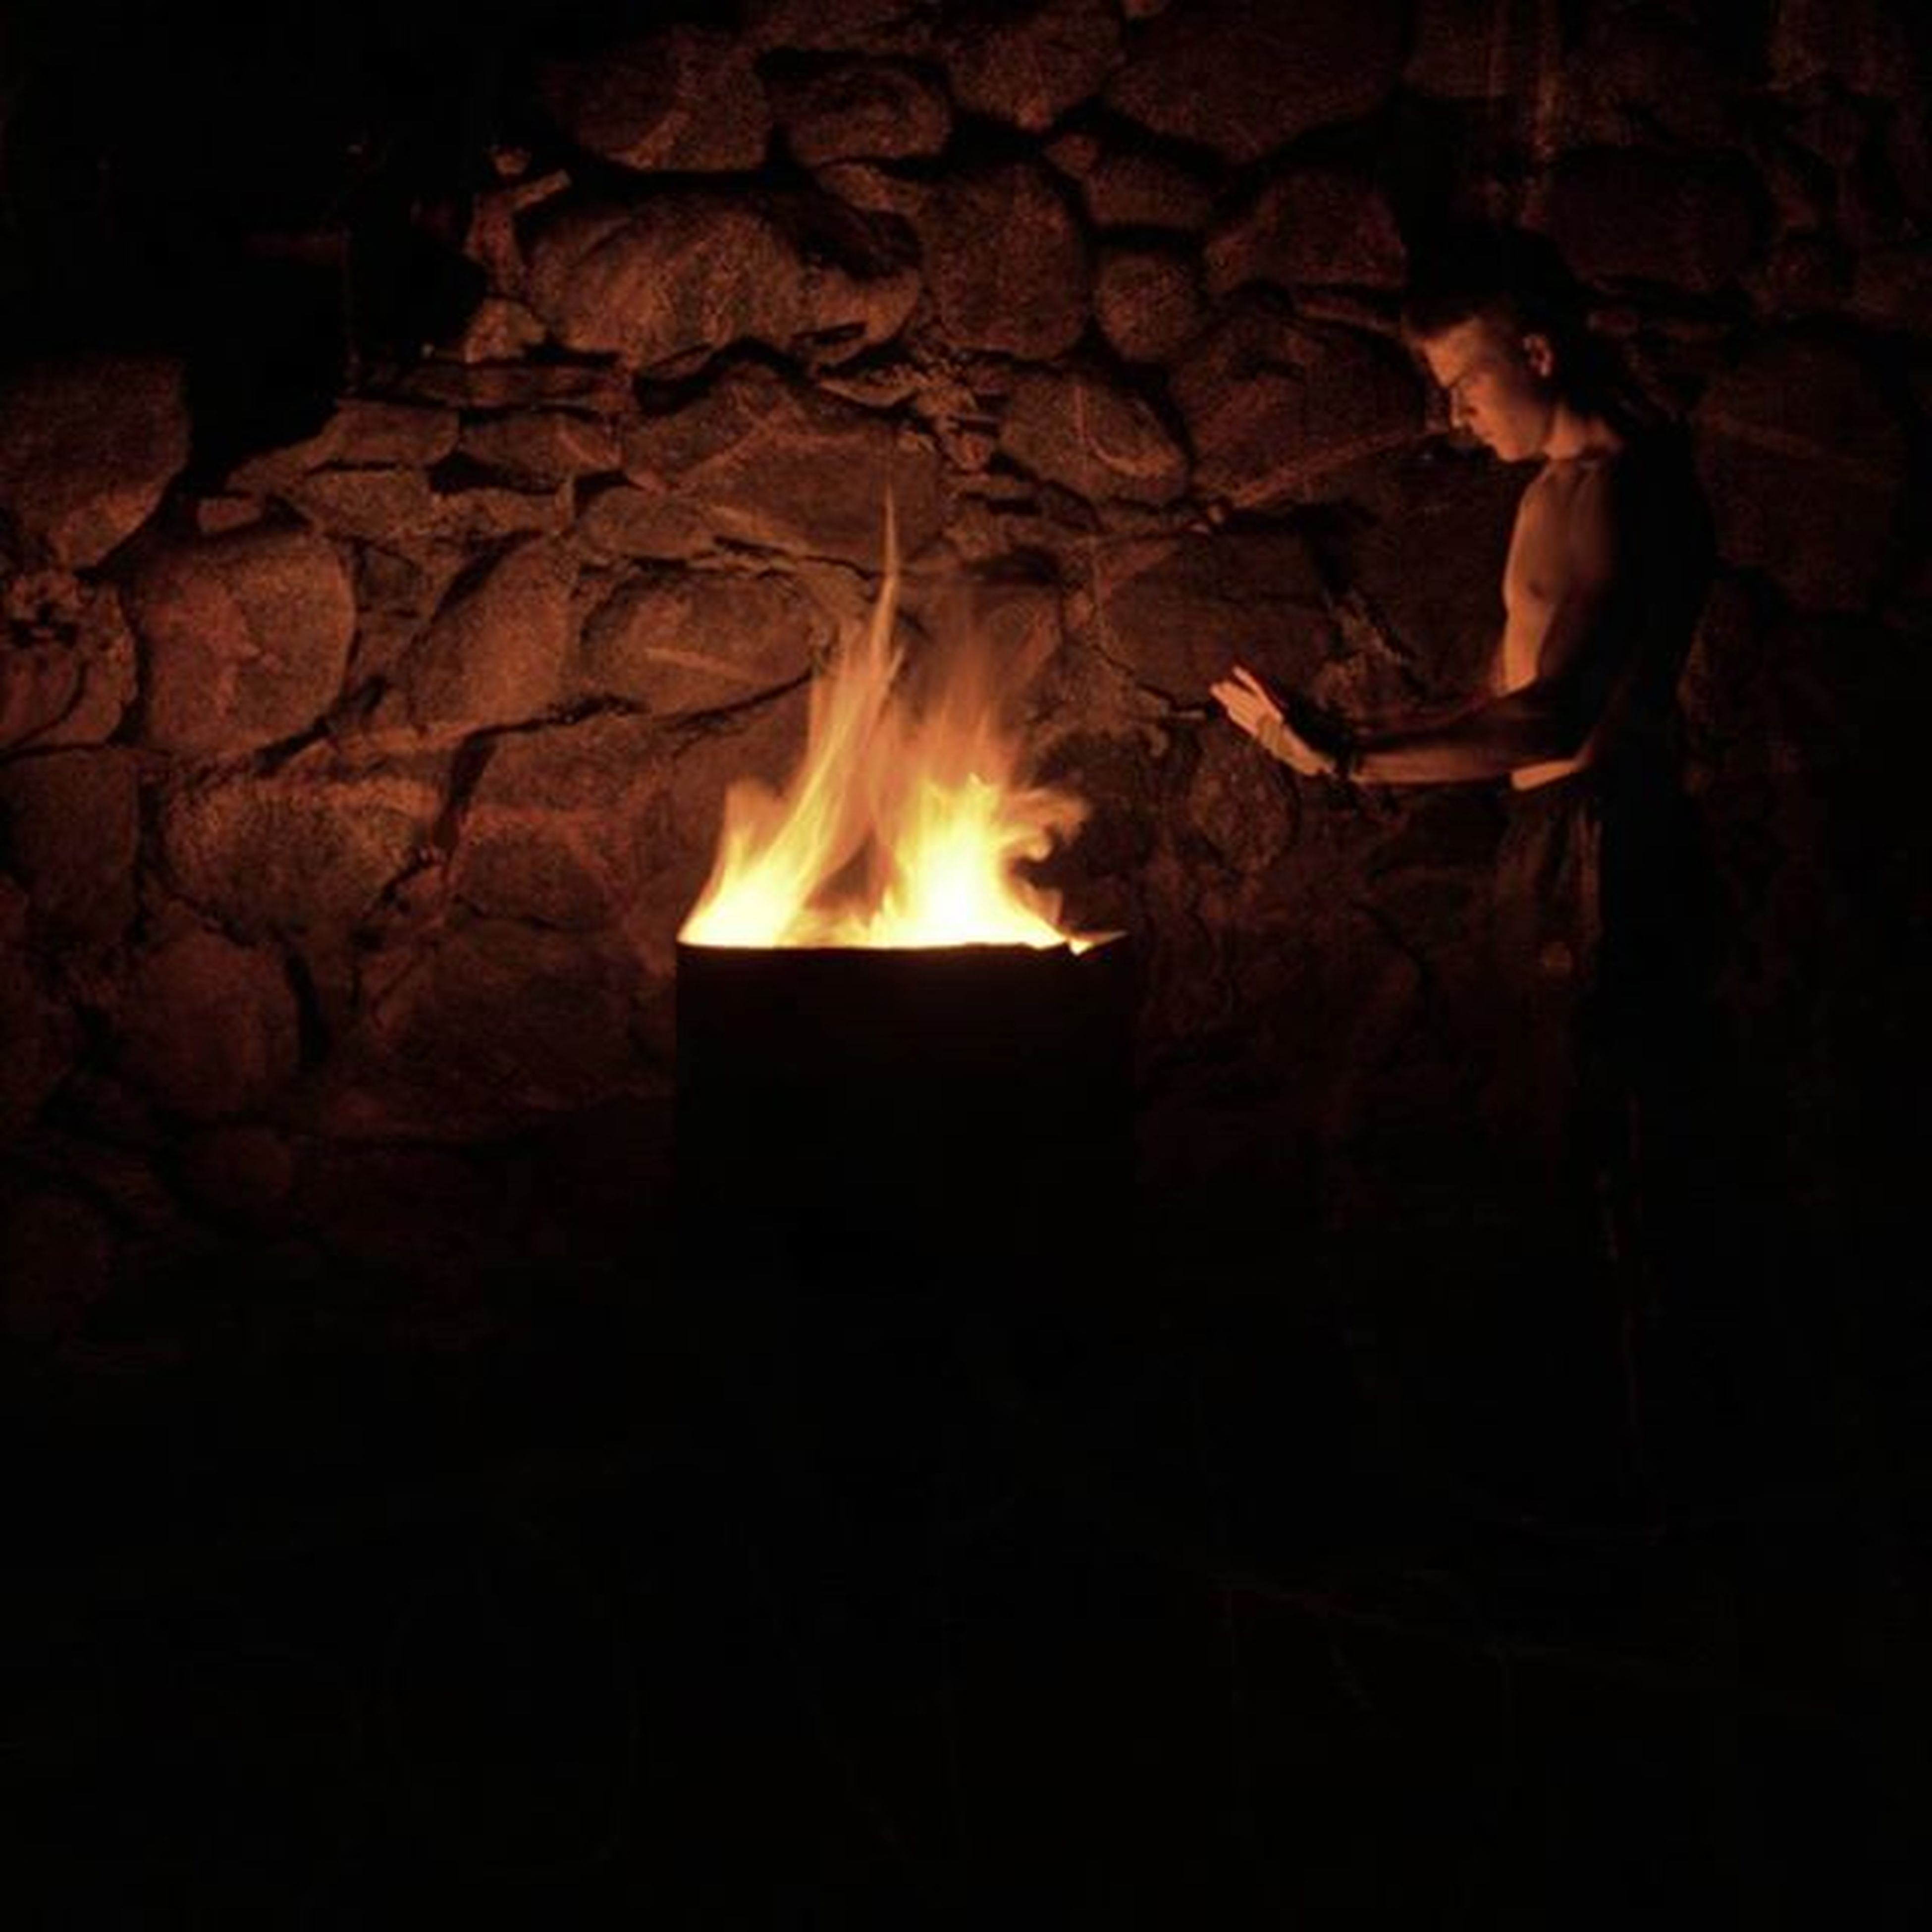 flame, burning, fire - natural phenomenon, heat - temperature, night, glowing, dark, indoors, illuminated, fire, heat, light - natural phenomenon, bonfire, cave, darkroom, close-up, no people, firewood, copy space, motion